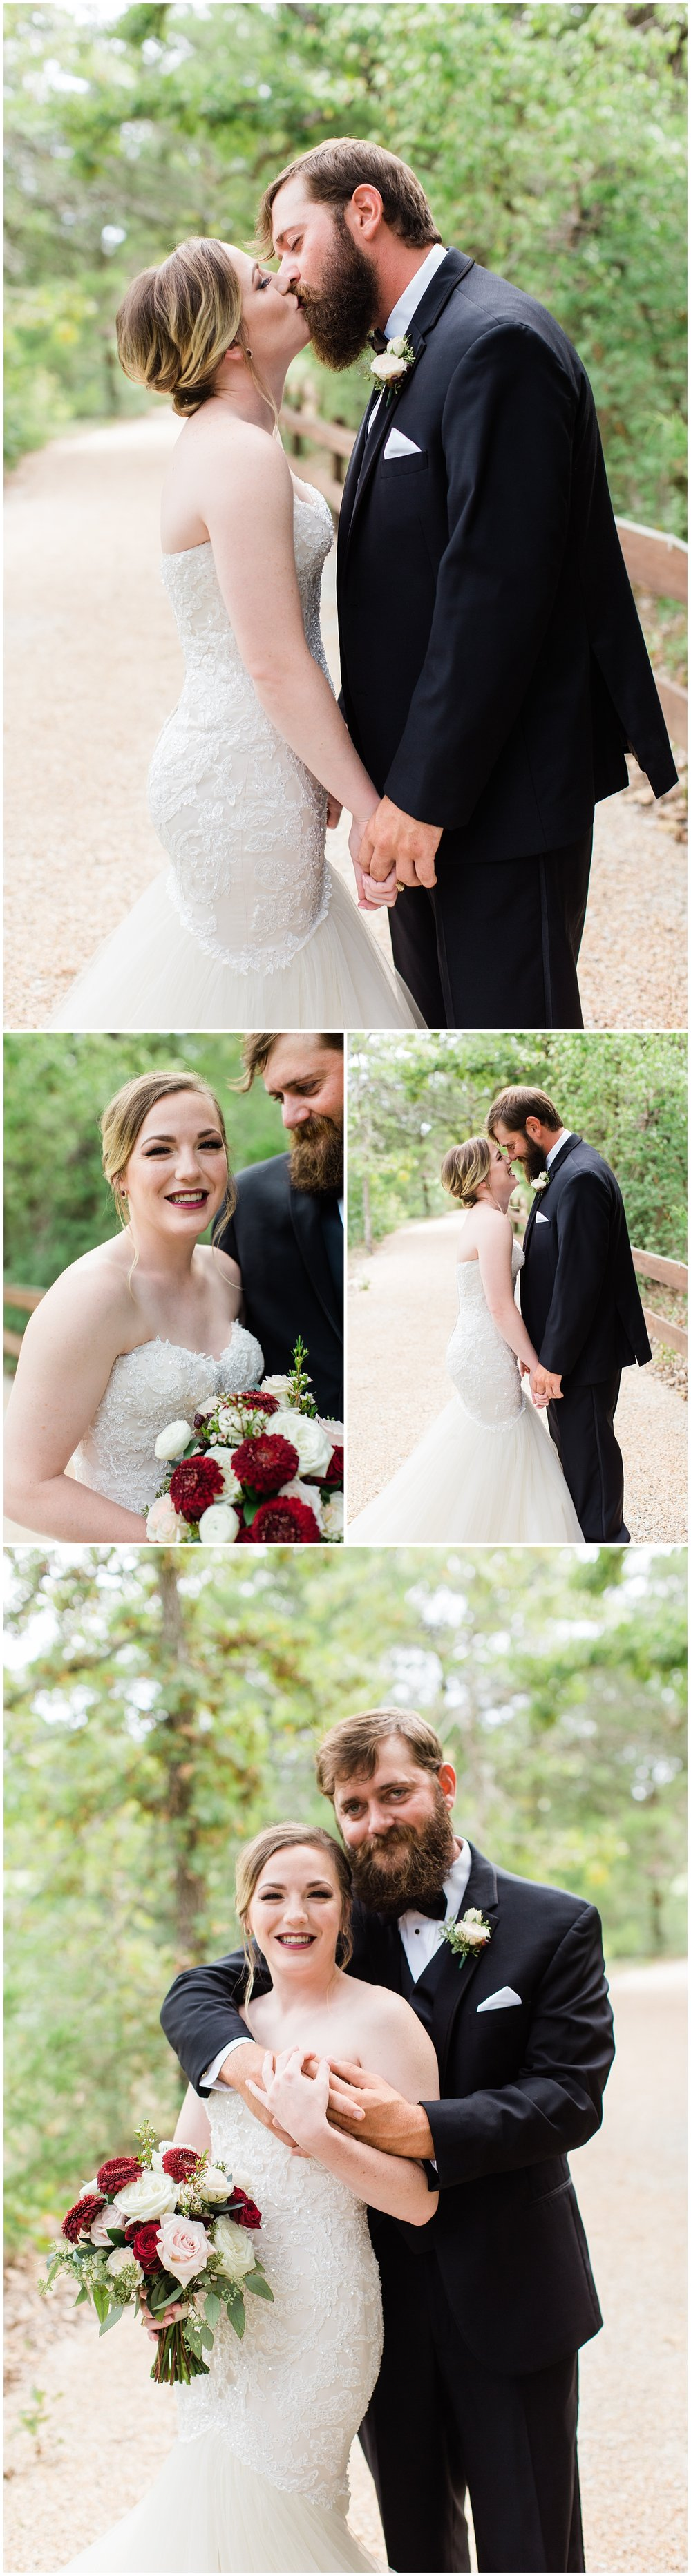 Peach_Creek_Ranch_Wedding_Kristina_Ross_Photography_0029.jpg